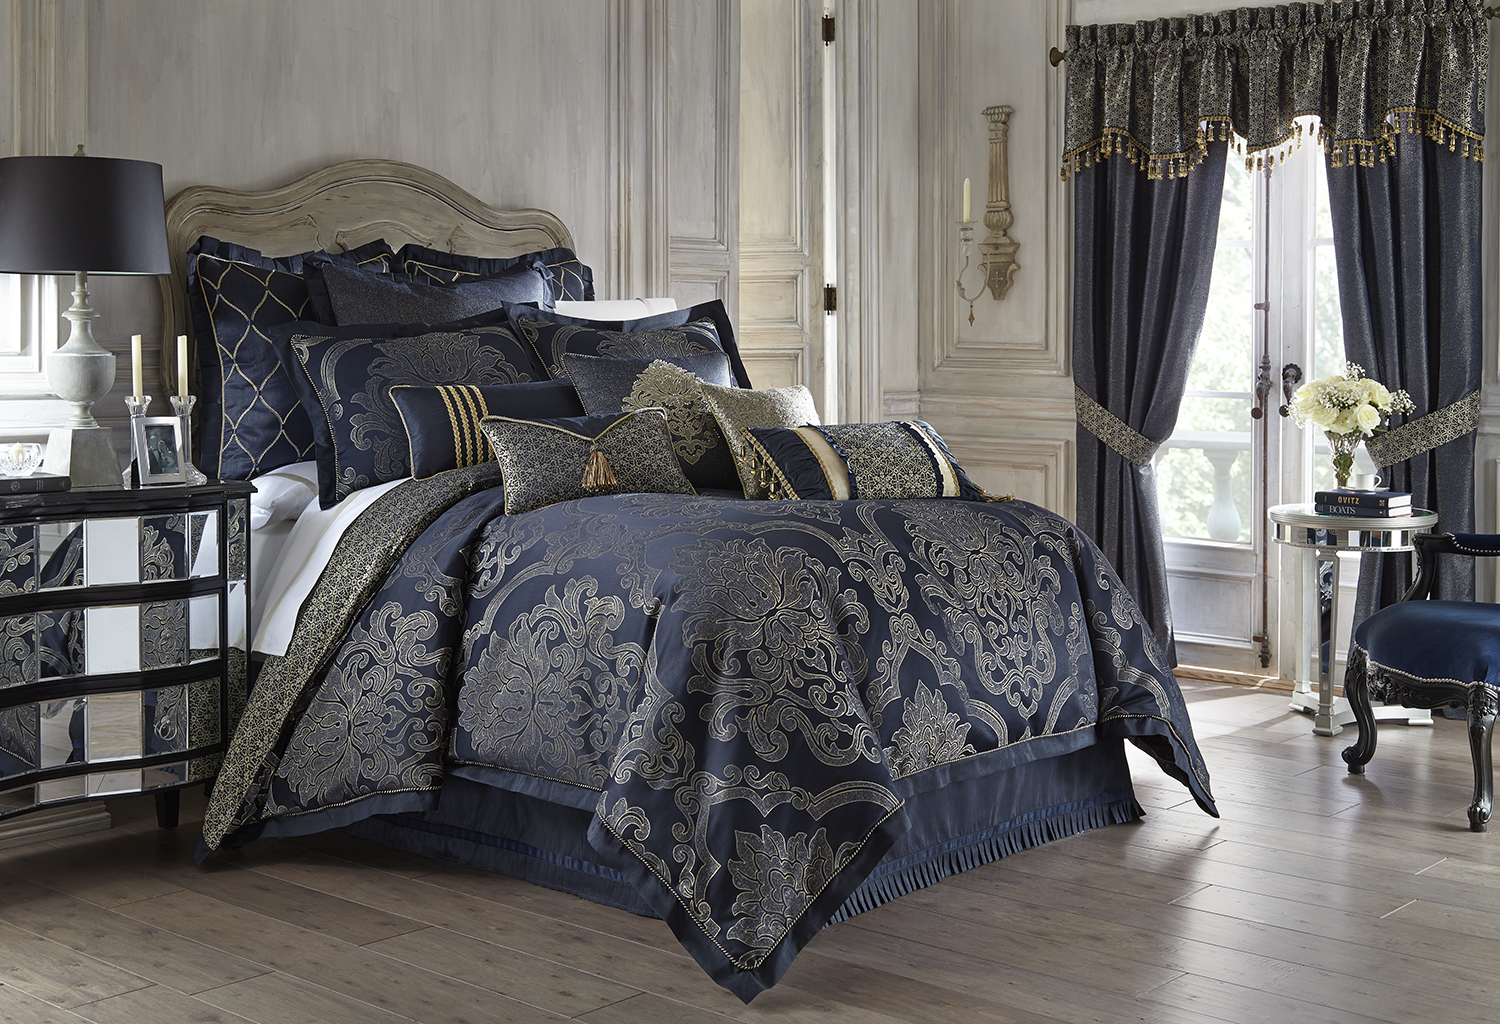 Vaughn By Waterford Luxury Bedding Beddingsuperstore Com